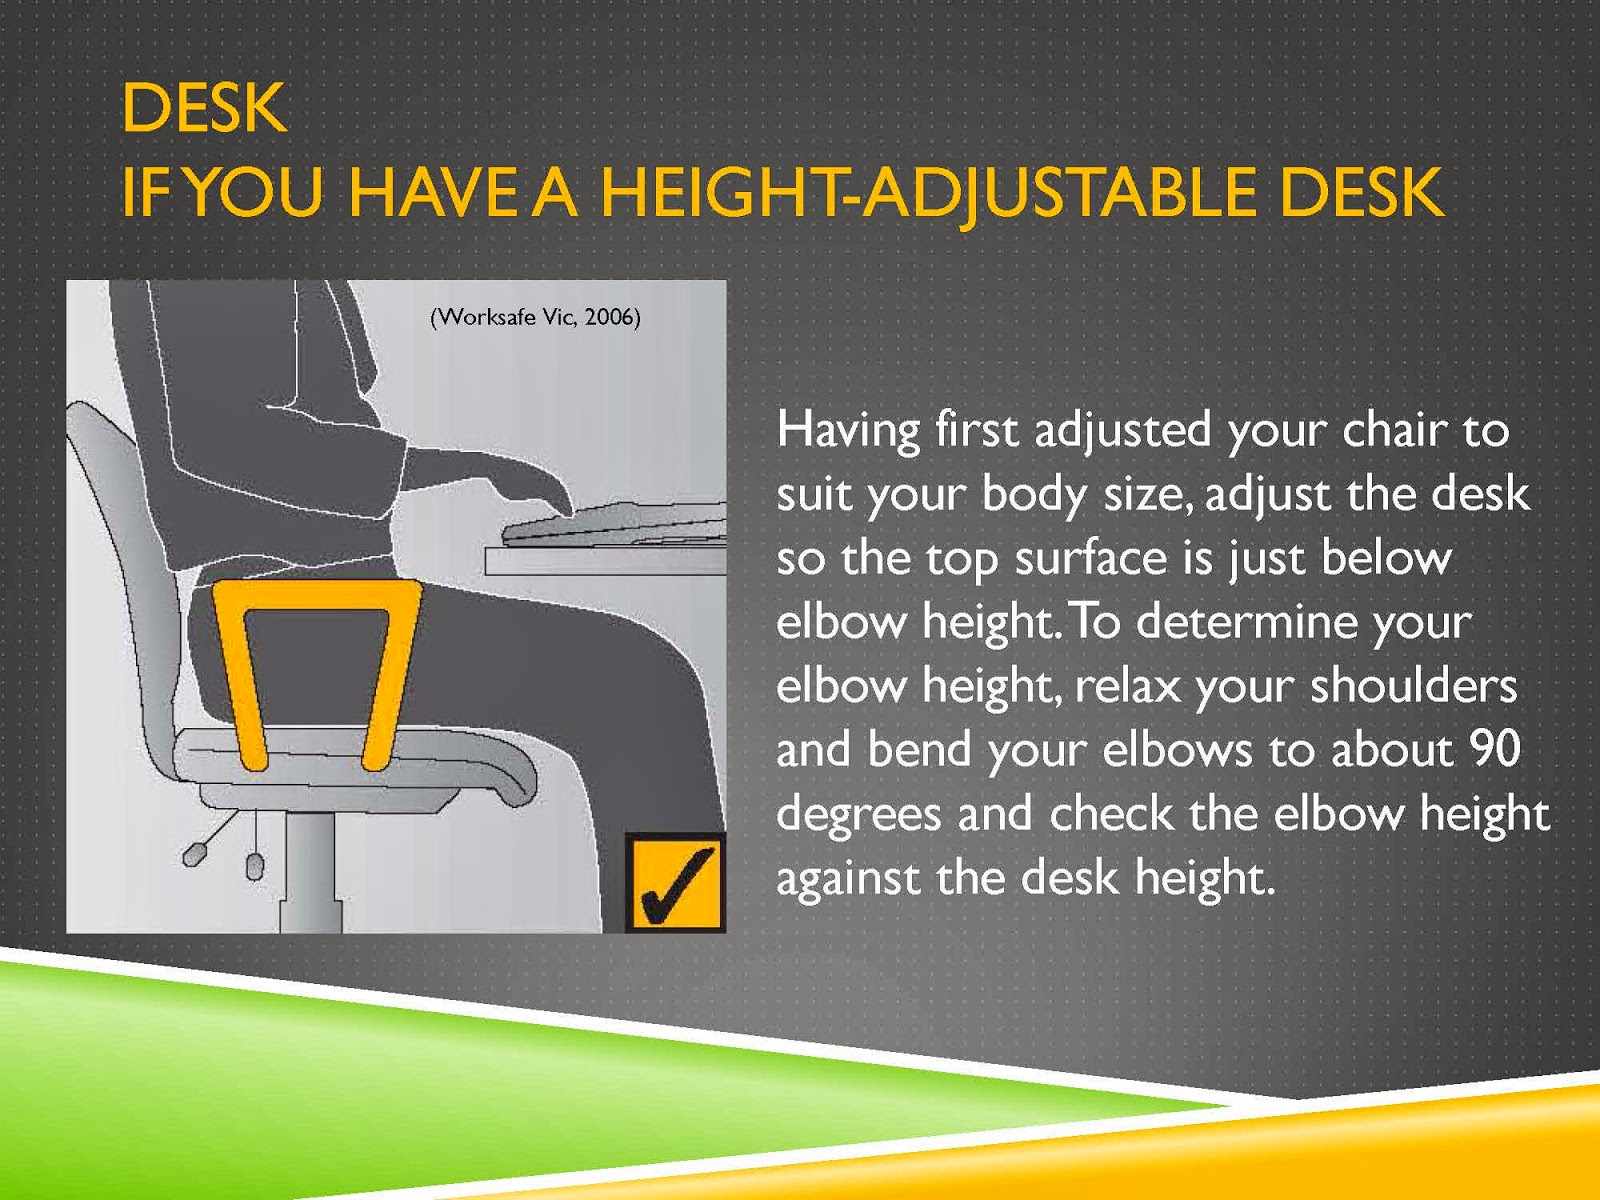 HEIGHT ADJUSTABLE DESK TIPS